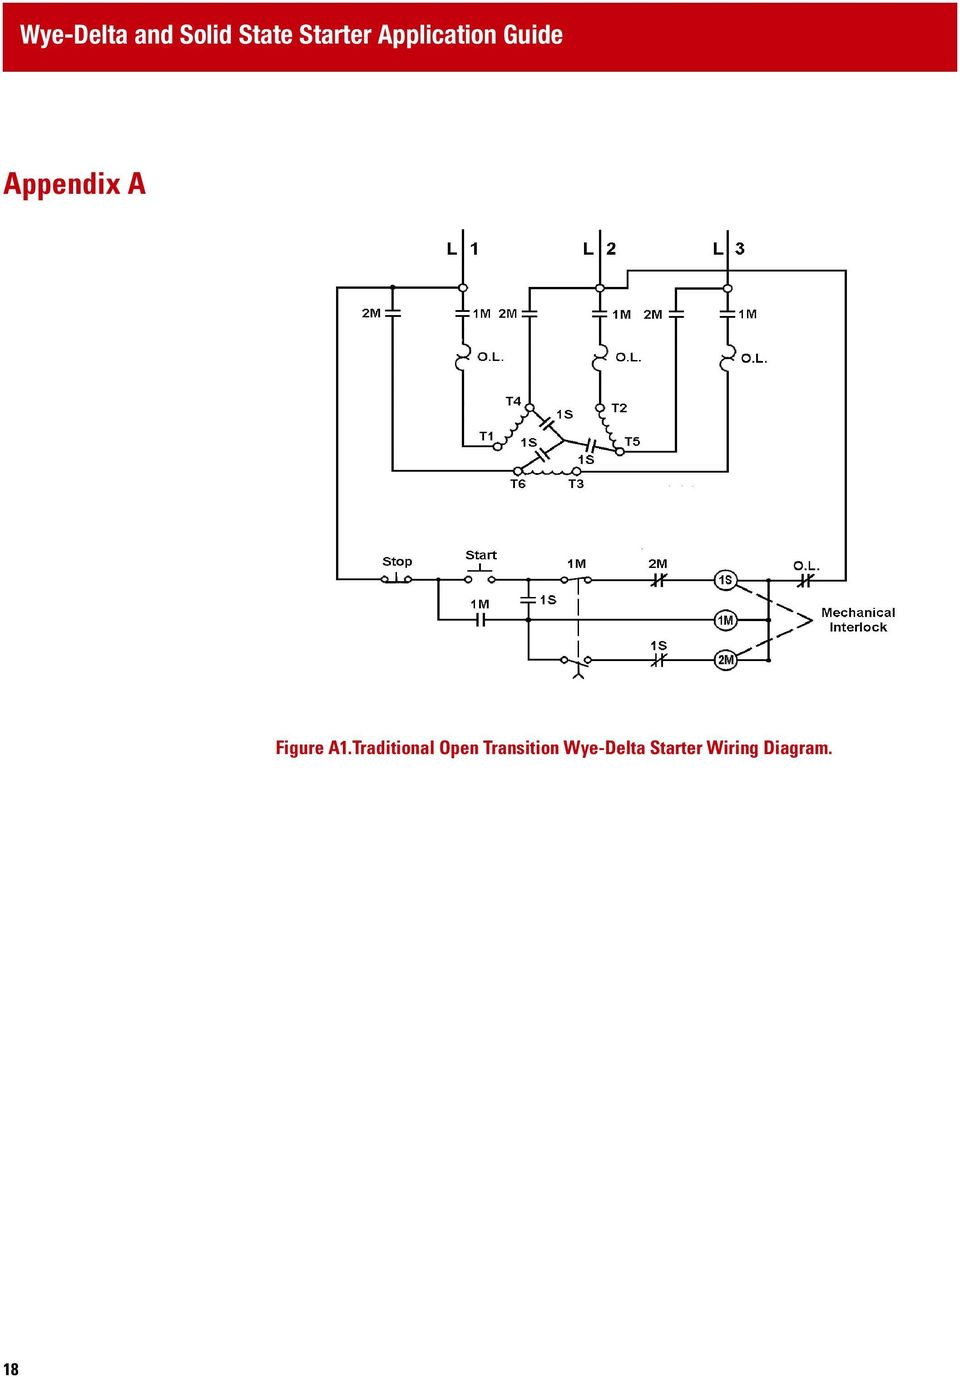 300hp Wye Delta Motor Wiring Diagram And Solid State Starter Application Guide Pdf 960x1377